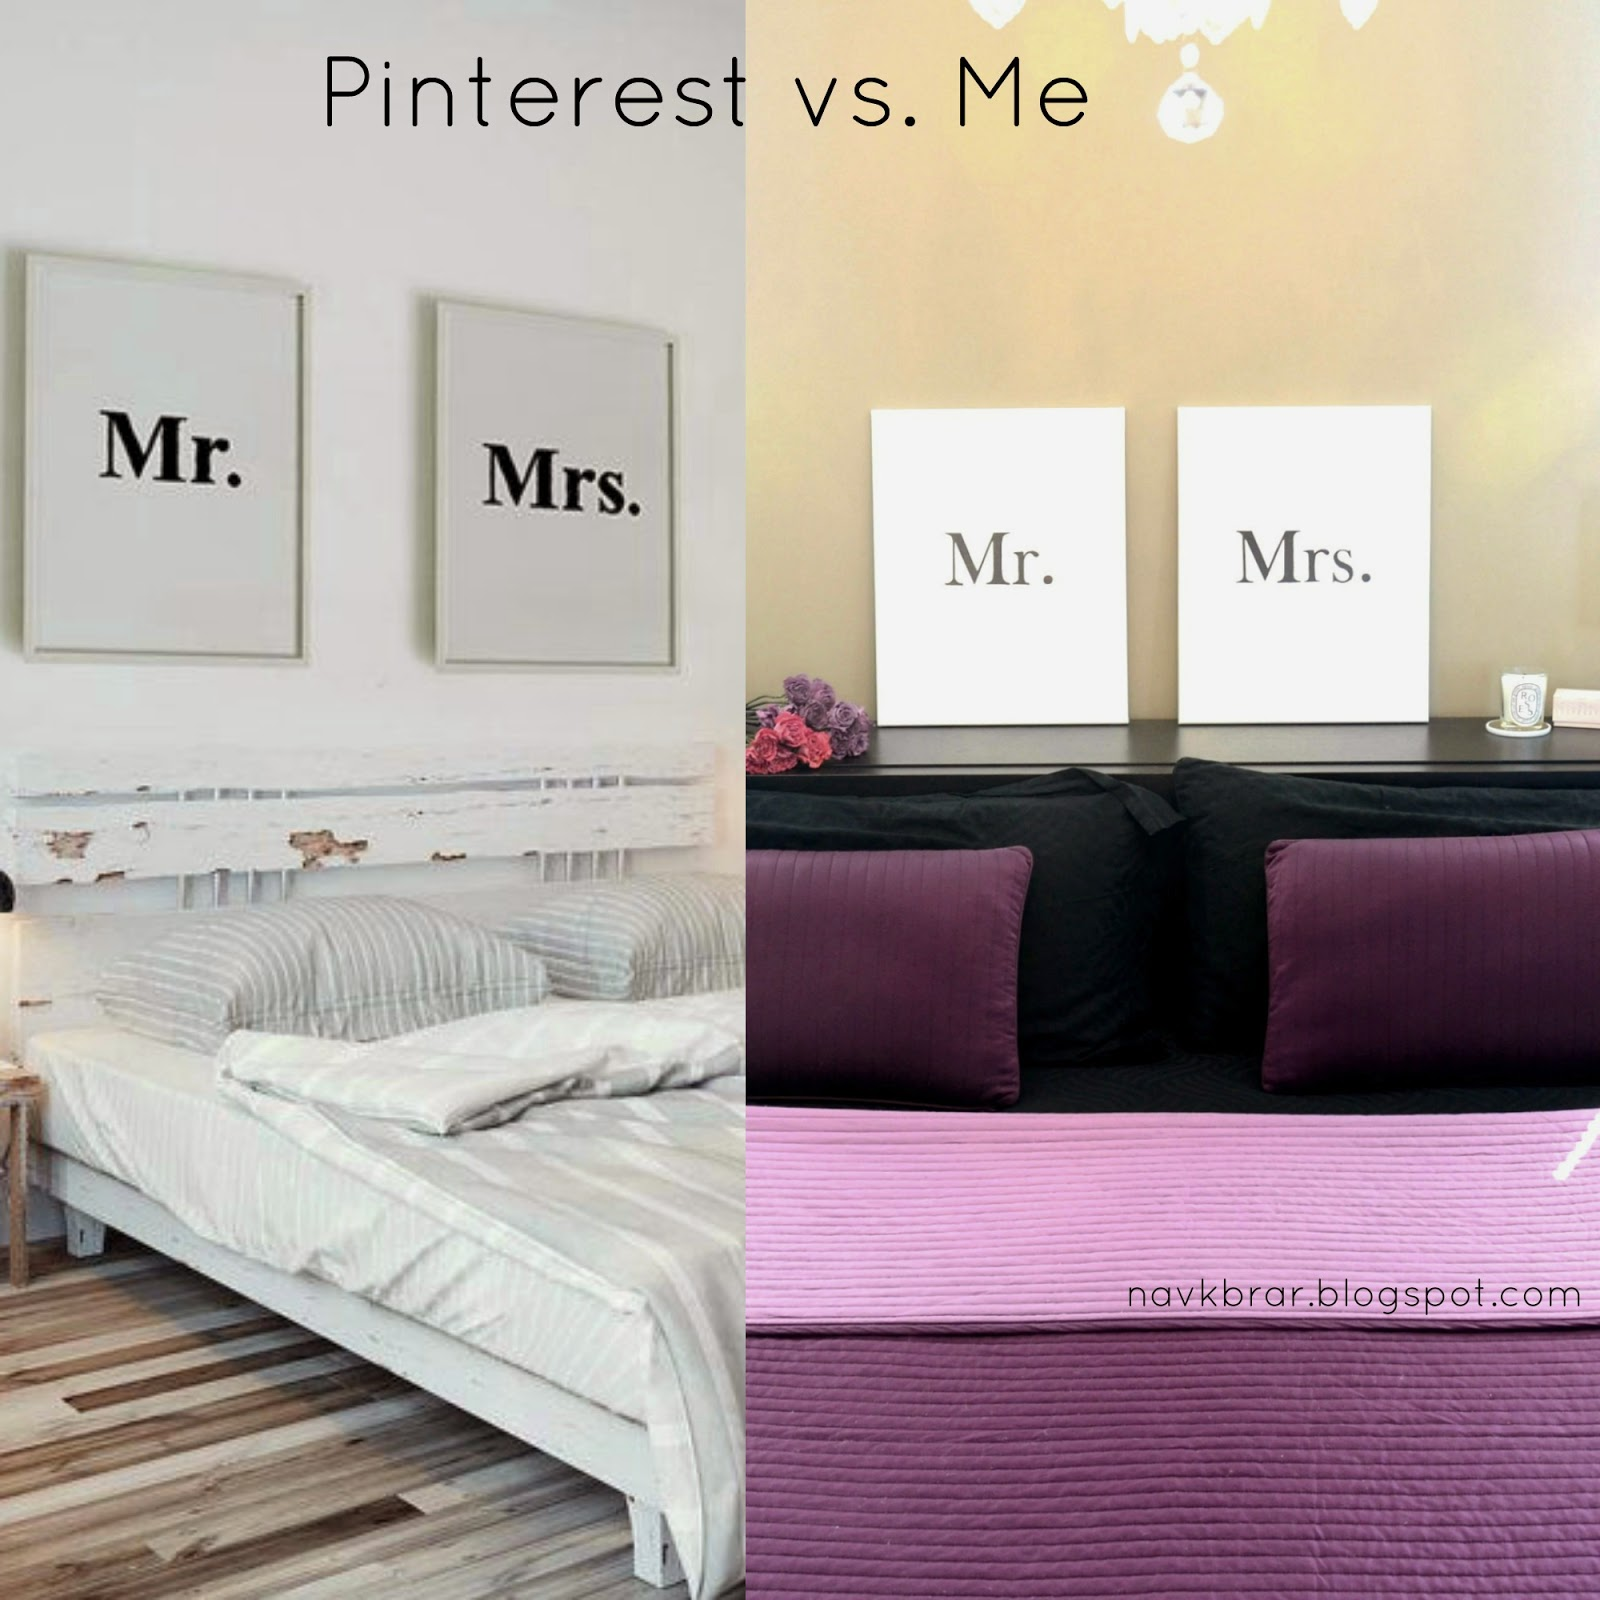 Mr and Mrs easy DIY signs black and white inspired by Pinterest